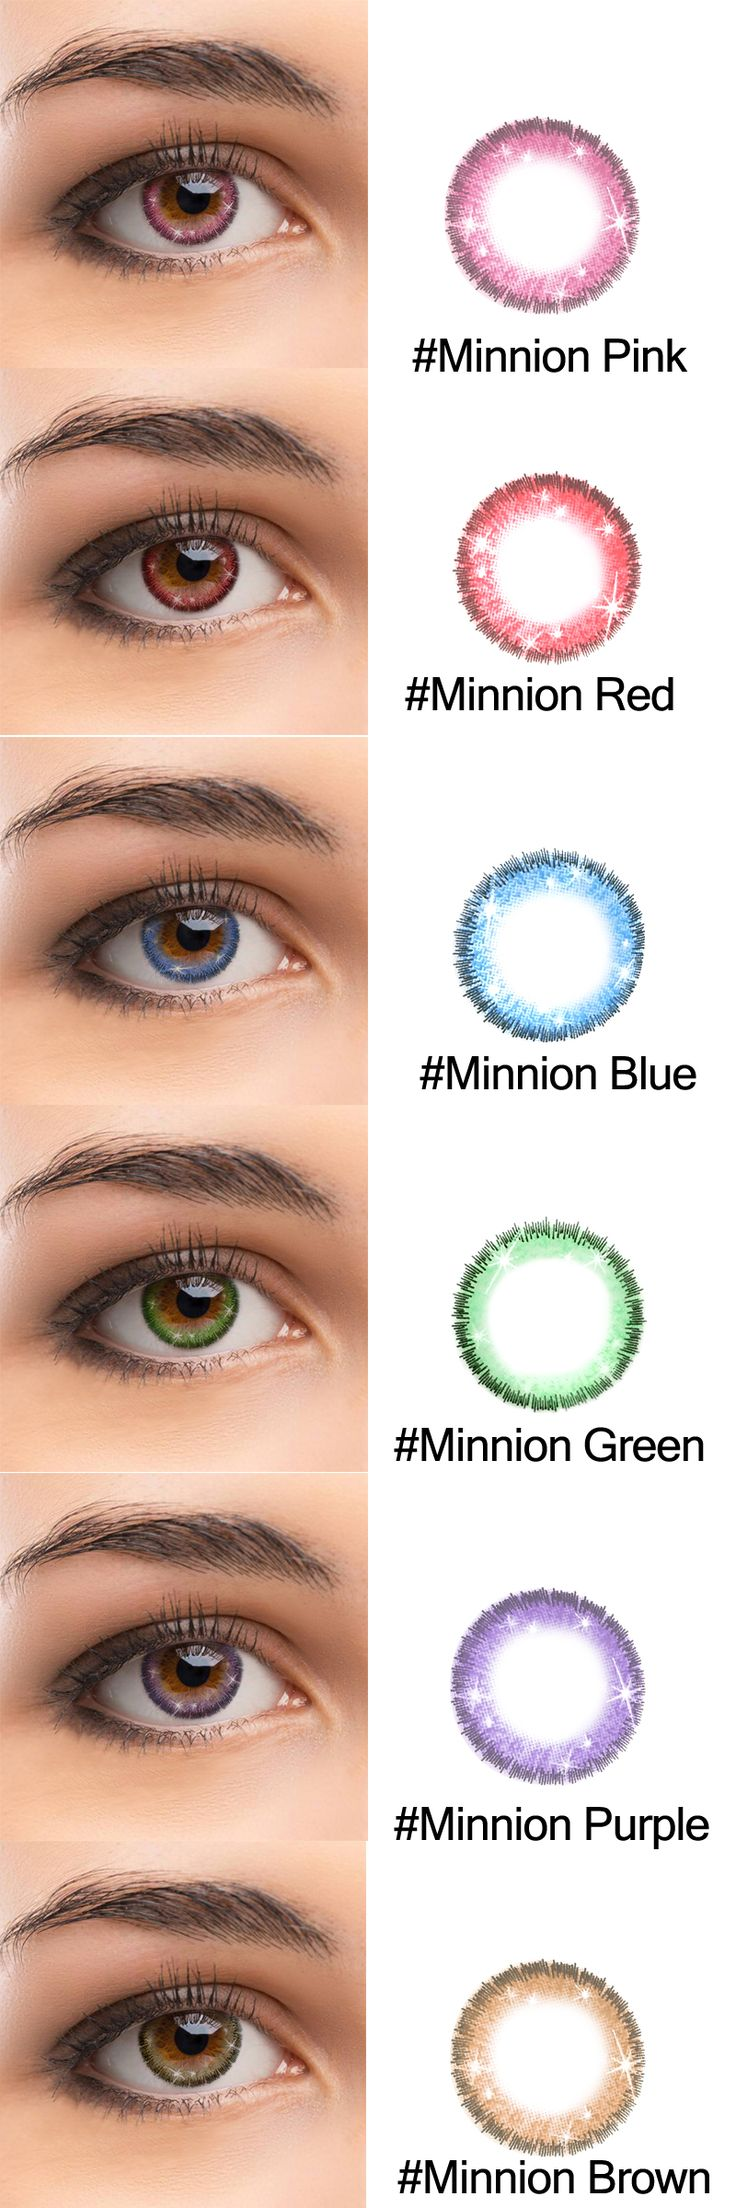 New Brand Colored Lenses TolyTolly. Minnion series has six